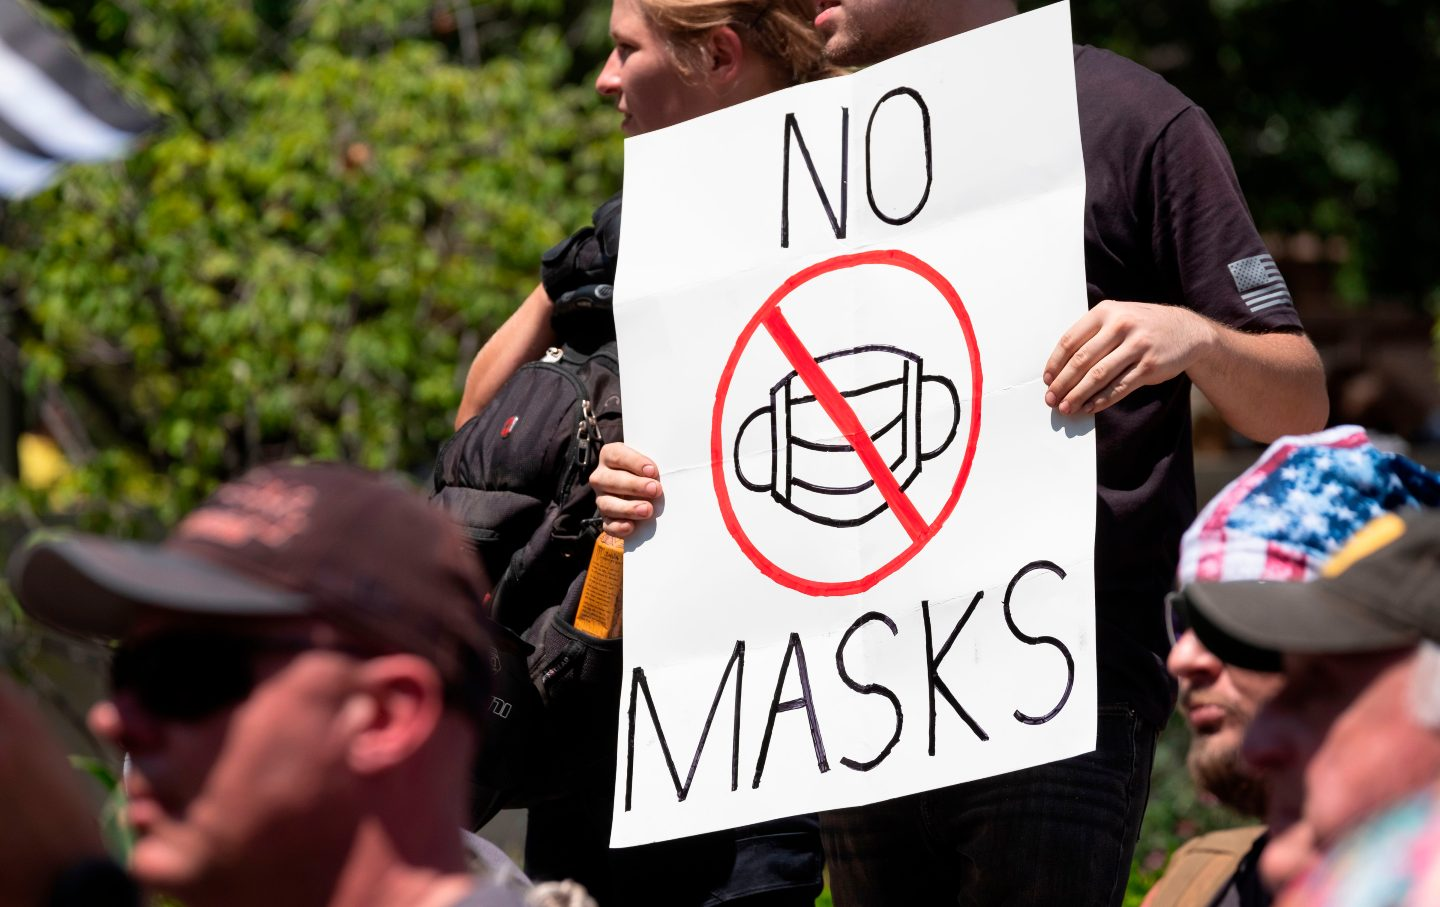 no-masks-protest-ohio-gt-img